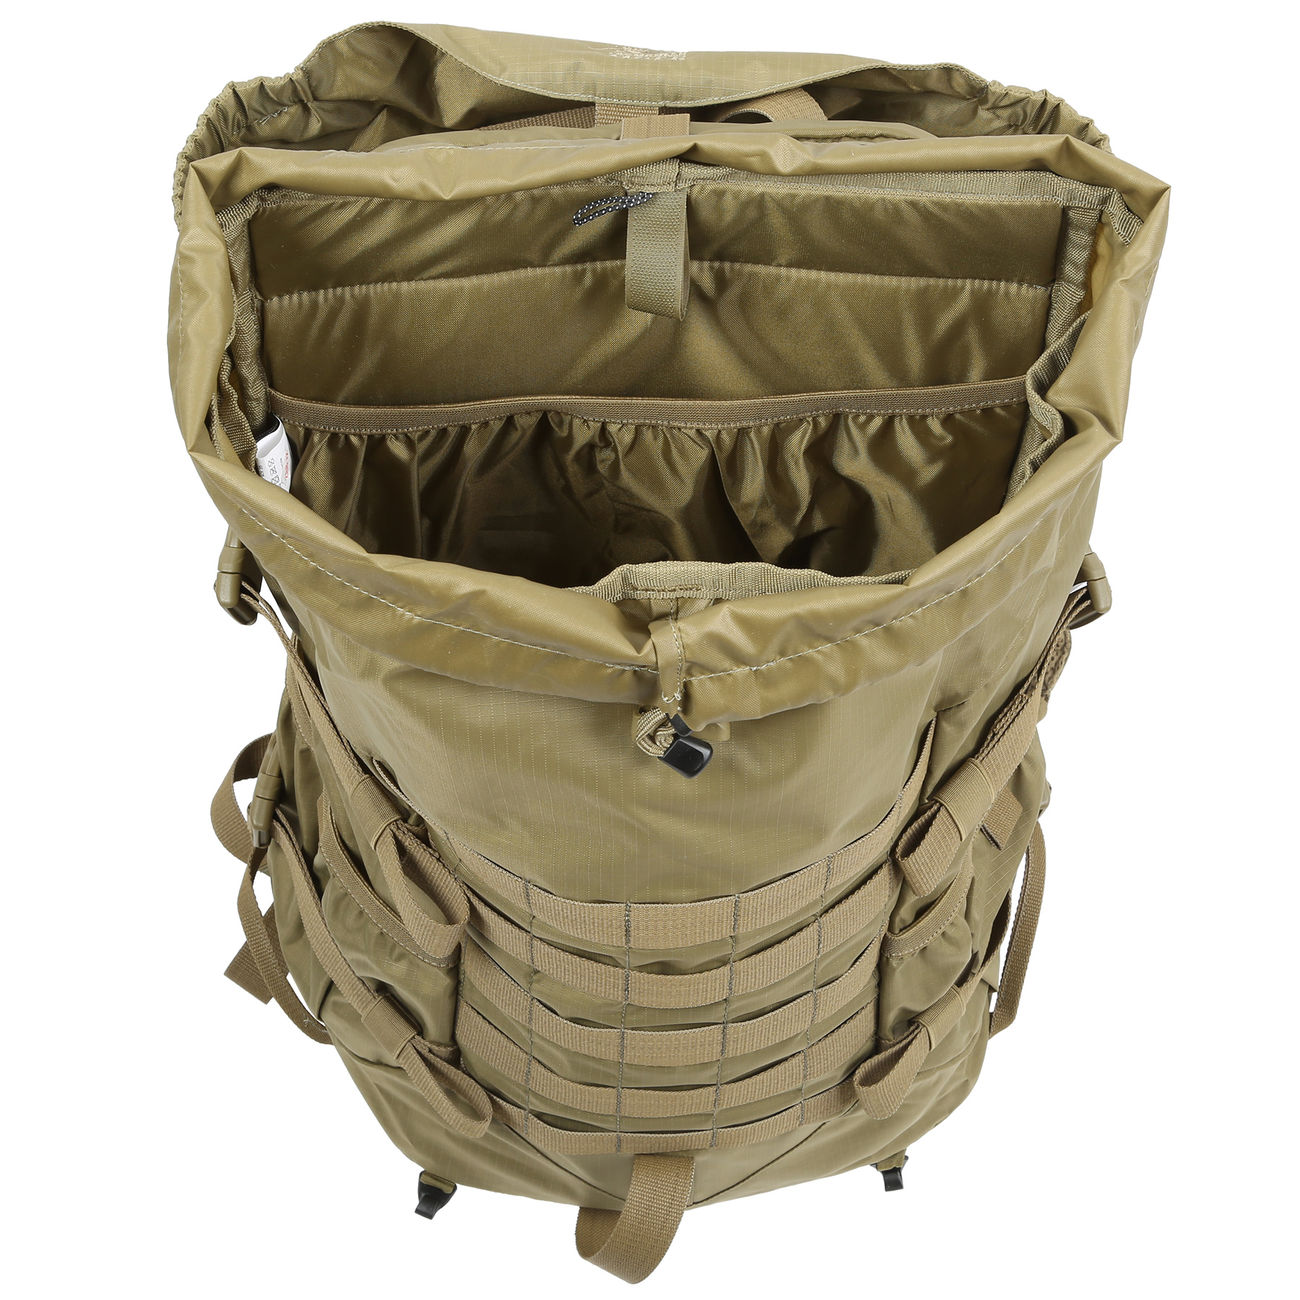 TT Rucksack Trooper Light Pack 35 khaki 6